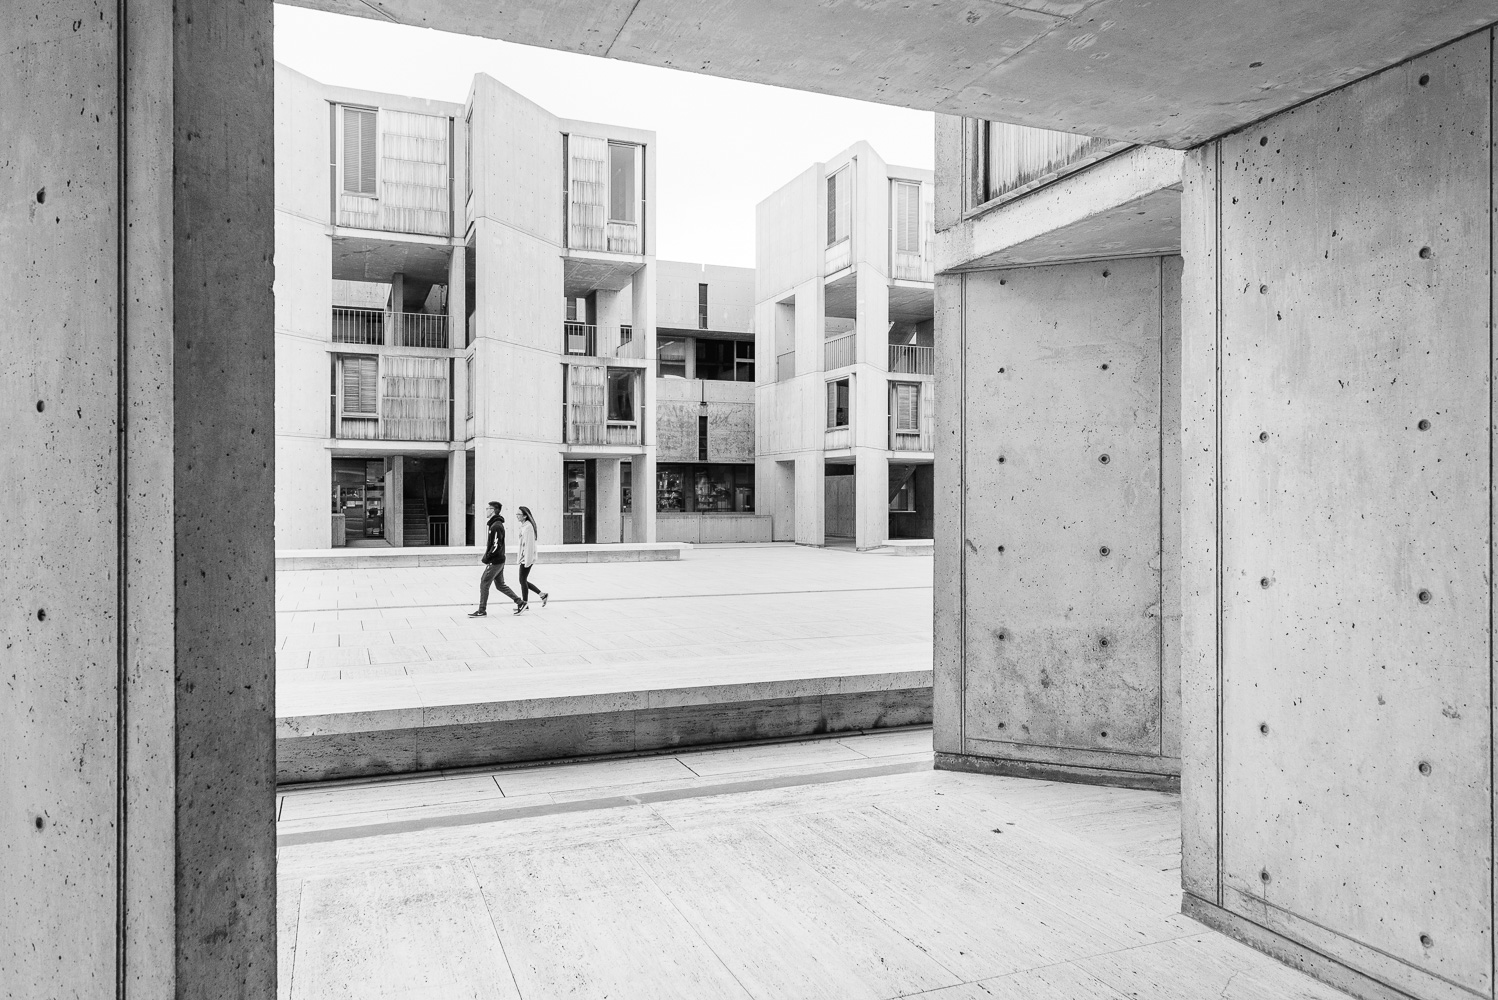 dacian-groza-concrete-black-and-white-architectural-photography-11-7973.jpg